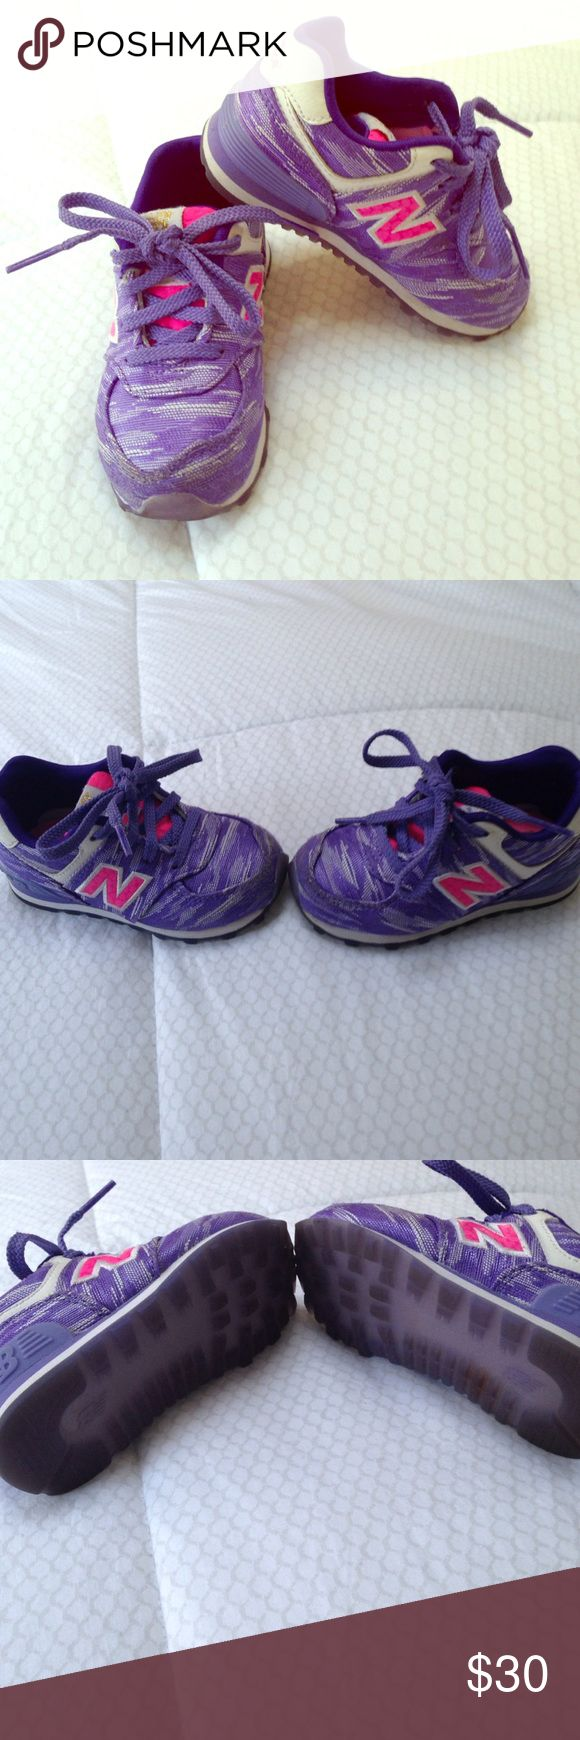 New Balance girl toddler sneakers size 6 These might be the cutest sneakers I ever bought my daughter! She out grew them so fast. I was bummed. Normal wear in front. Honestly they are practically brand new. These are pics without them being washed or cleaned yet! Adorable and durable sneakers!❤️ New Balance Shoes Sneakers